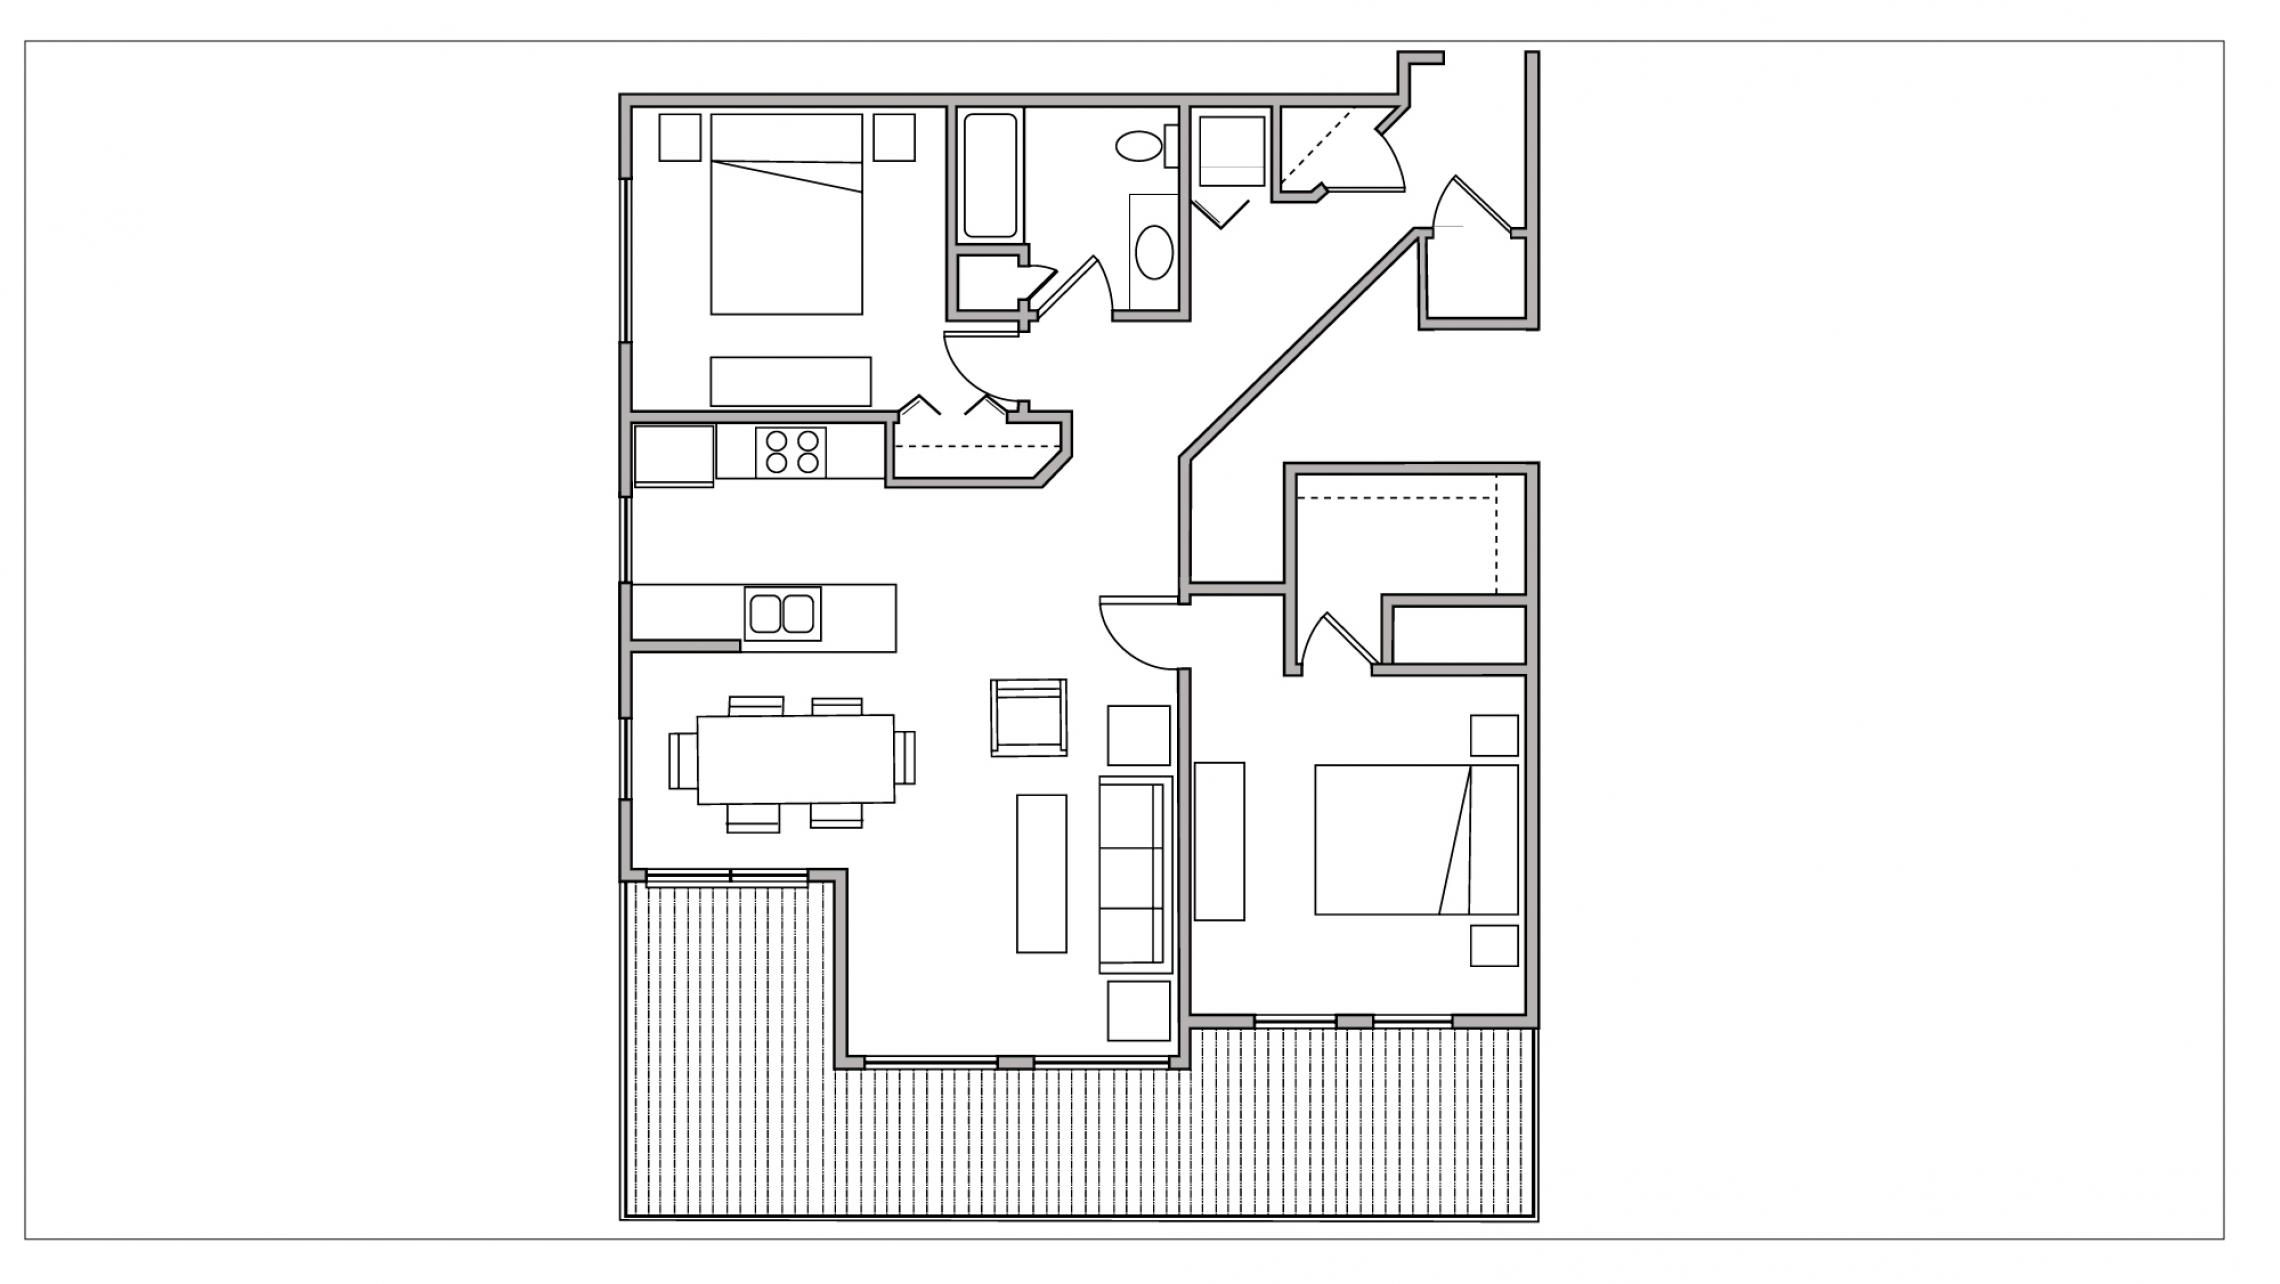 ULI City Place 107 - Two Bedroom, One Bathroom